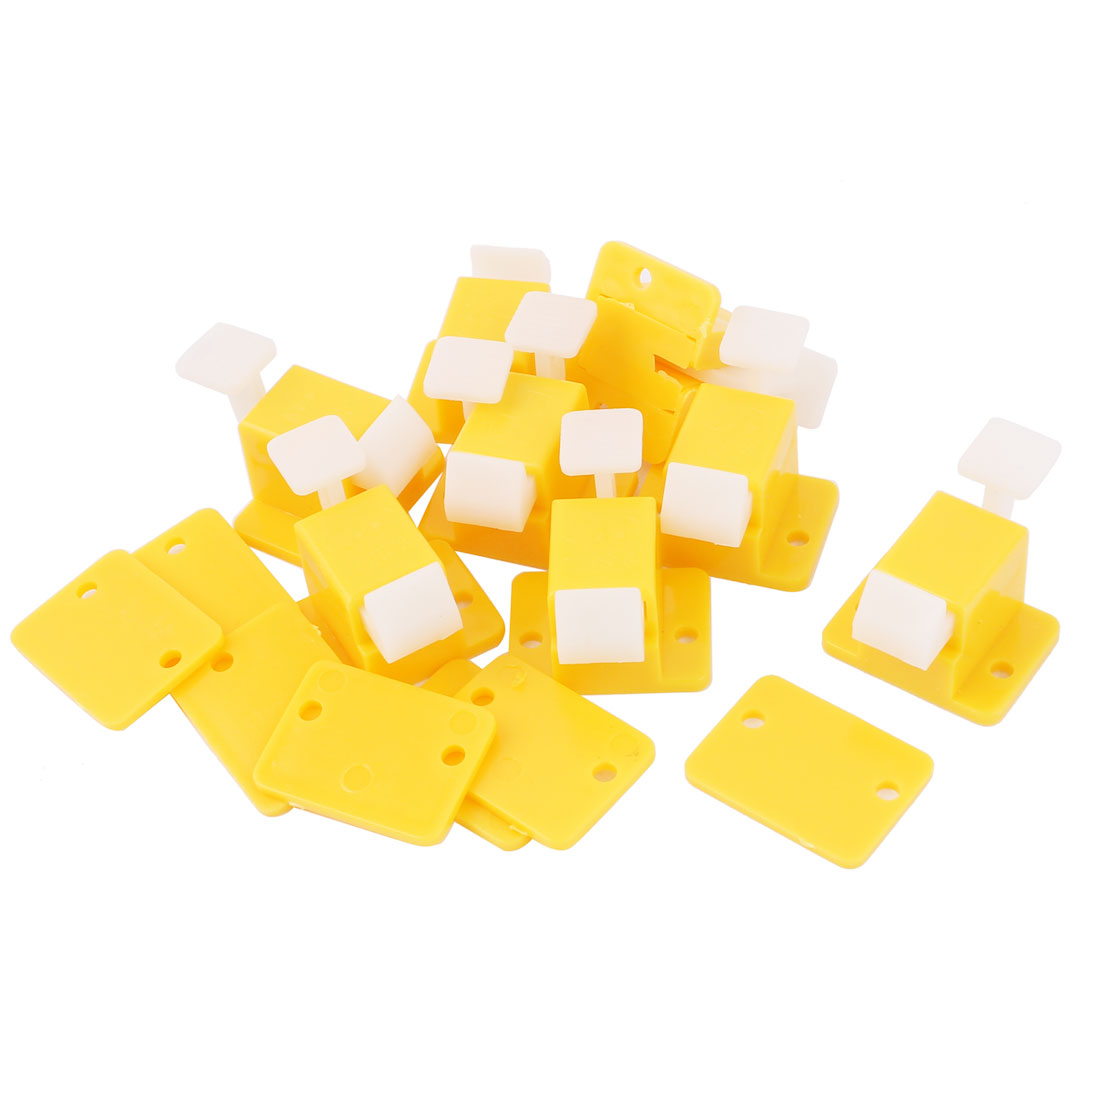 8 Pcs Plastic Prototype PCB Board Test Fixture Jig Latch Yellow White